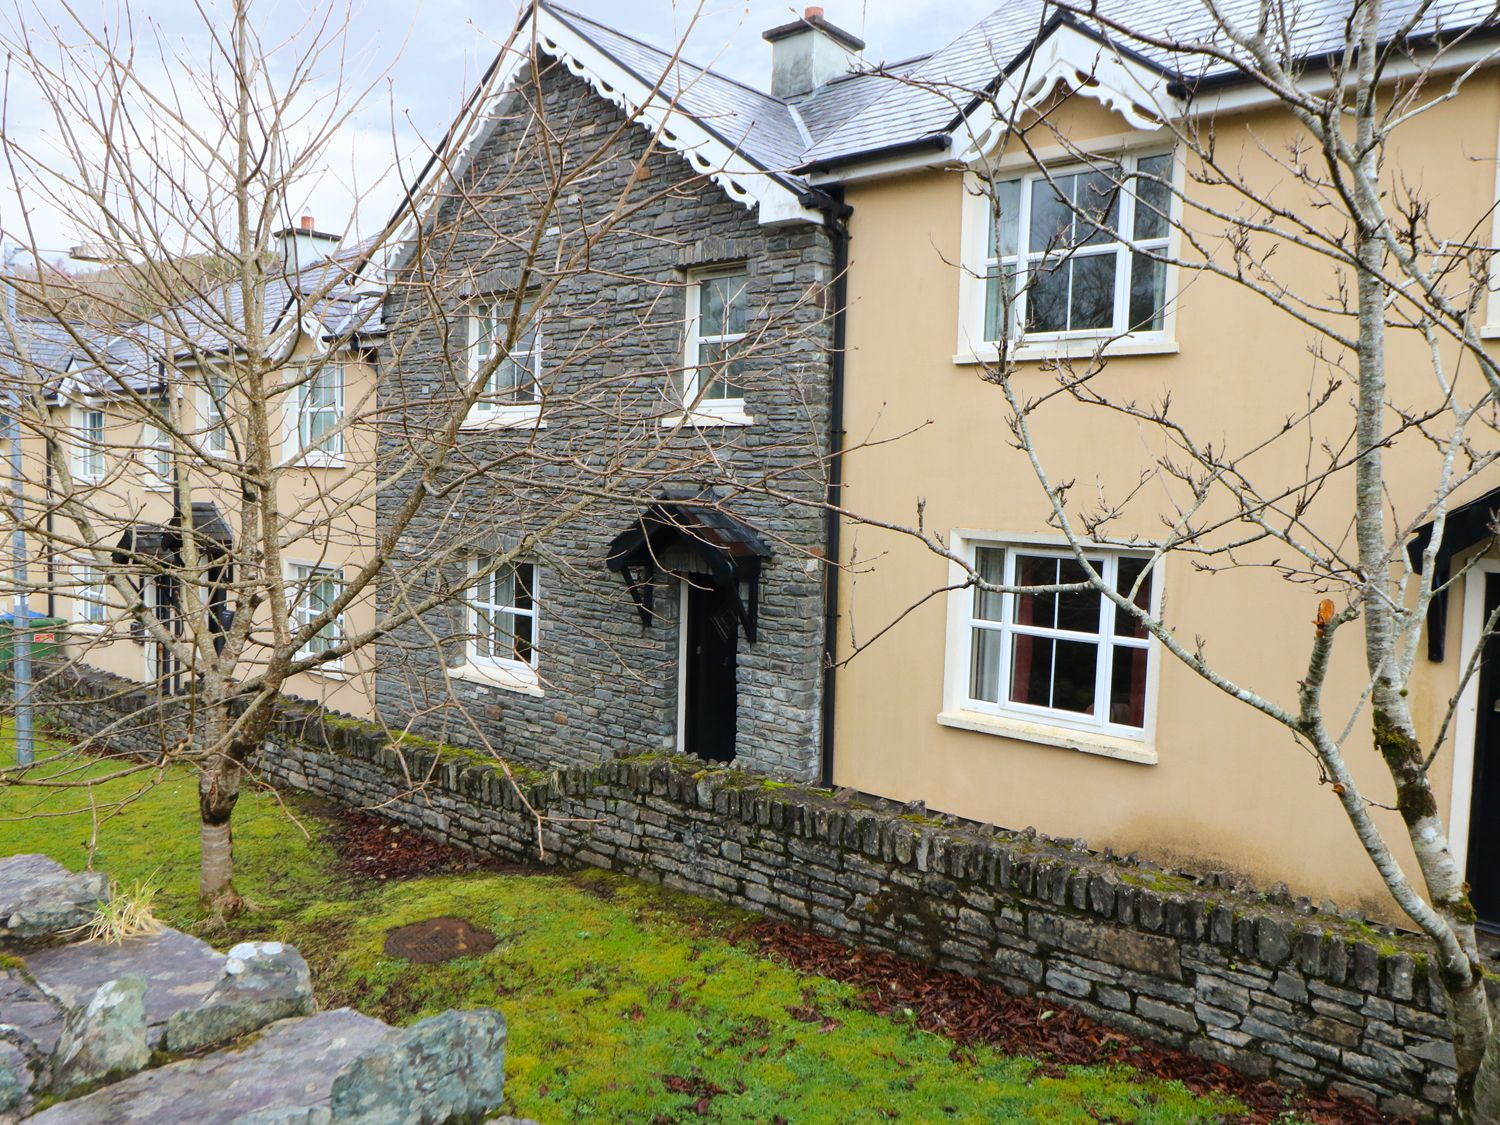 3 Dalewood - Kinsale & County Cork - 969276 - photo 1